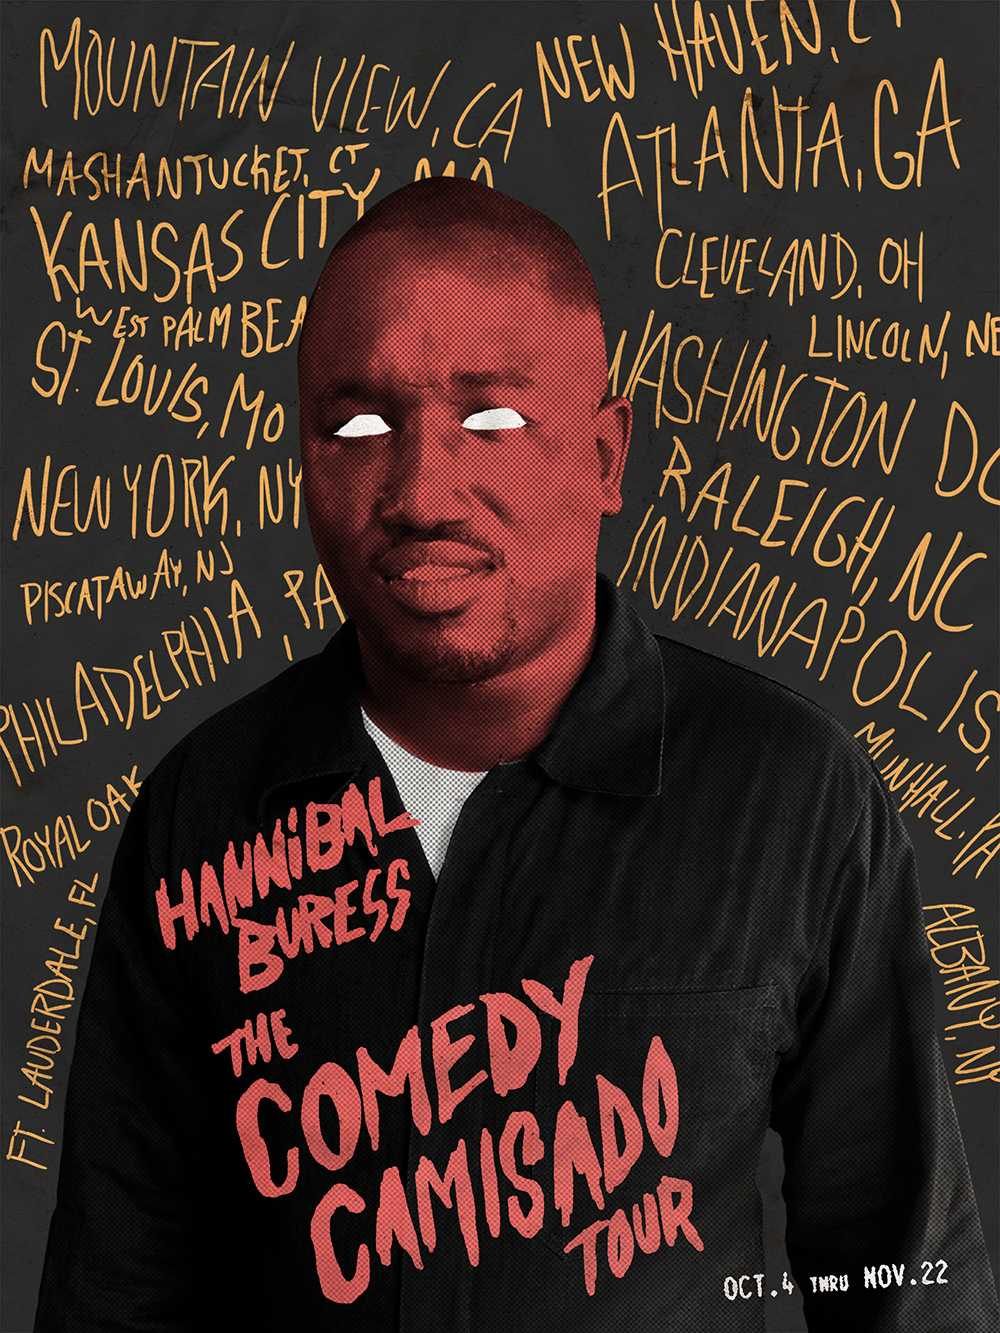 The Comedy Camisado Tour will bring Hannibal Buress' interesting take on comedy to Playhouse Square's Ohio Theater on Oct. 12